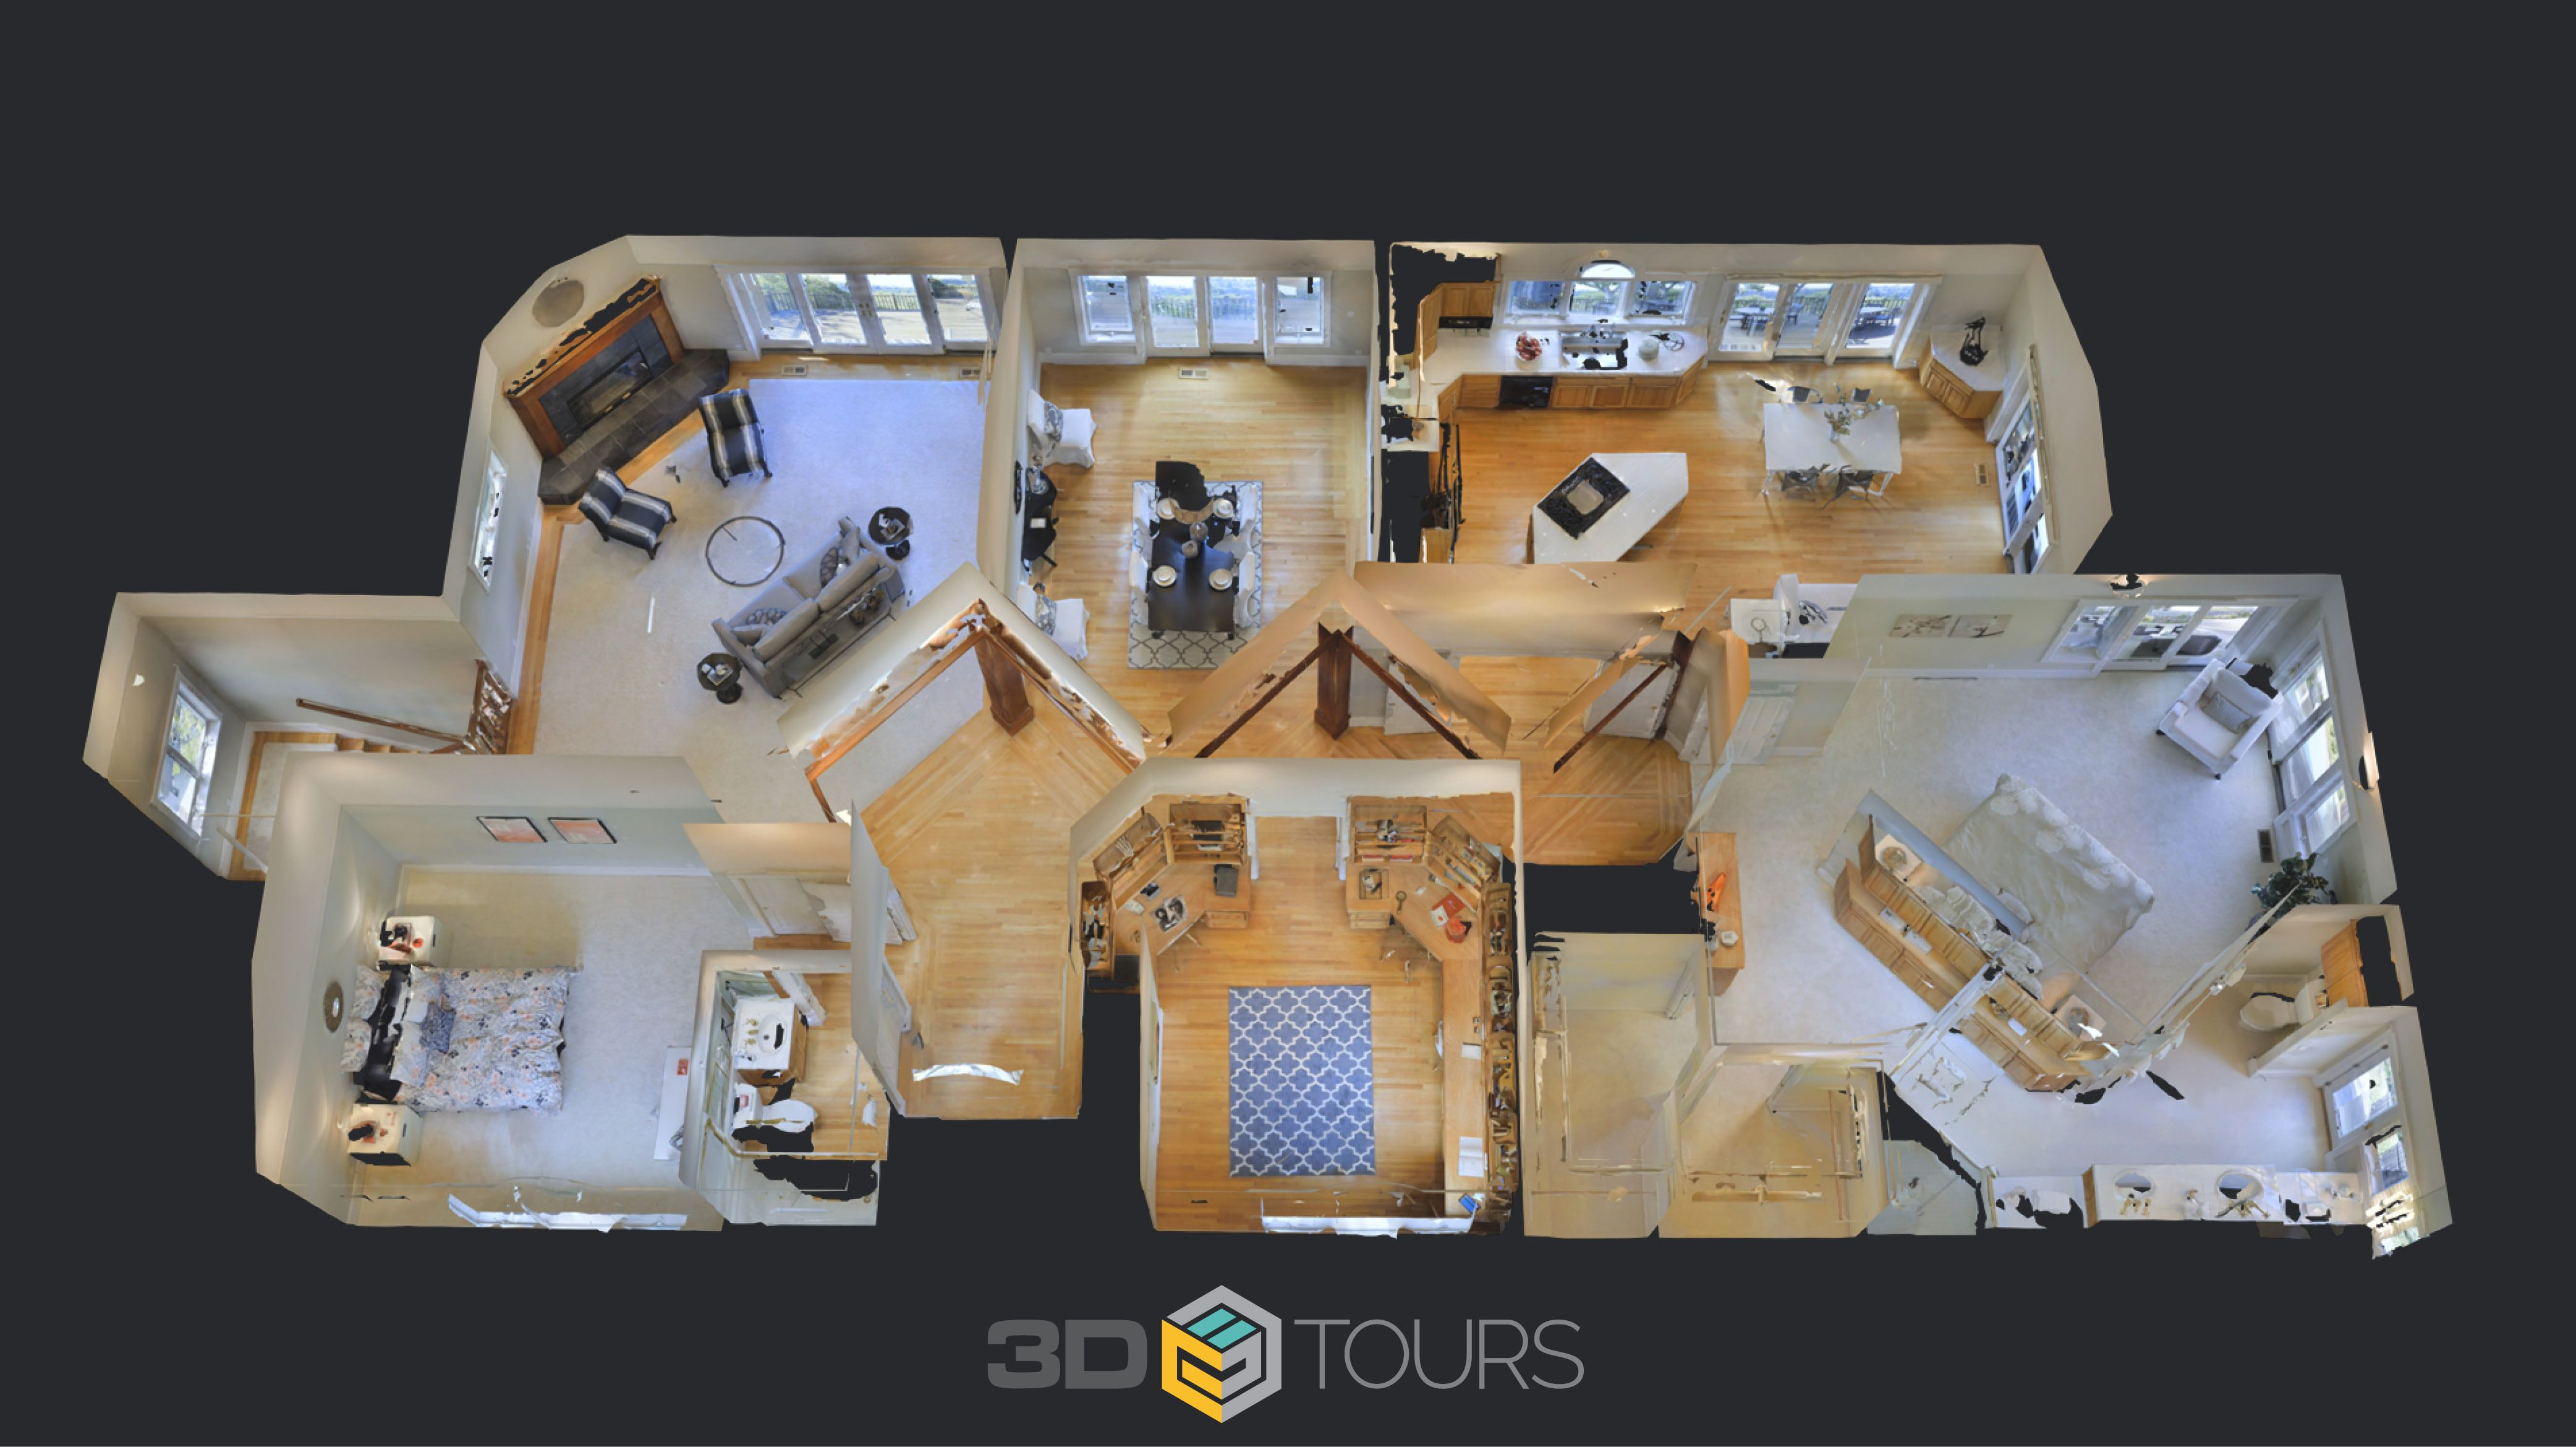 A dollhouse view created by a 3D tour